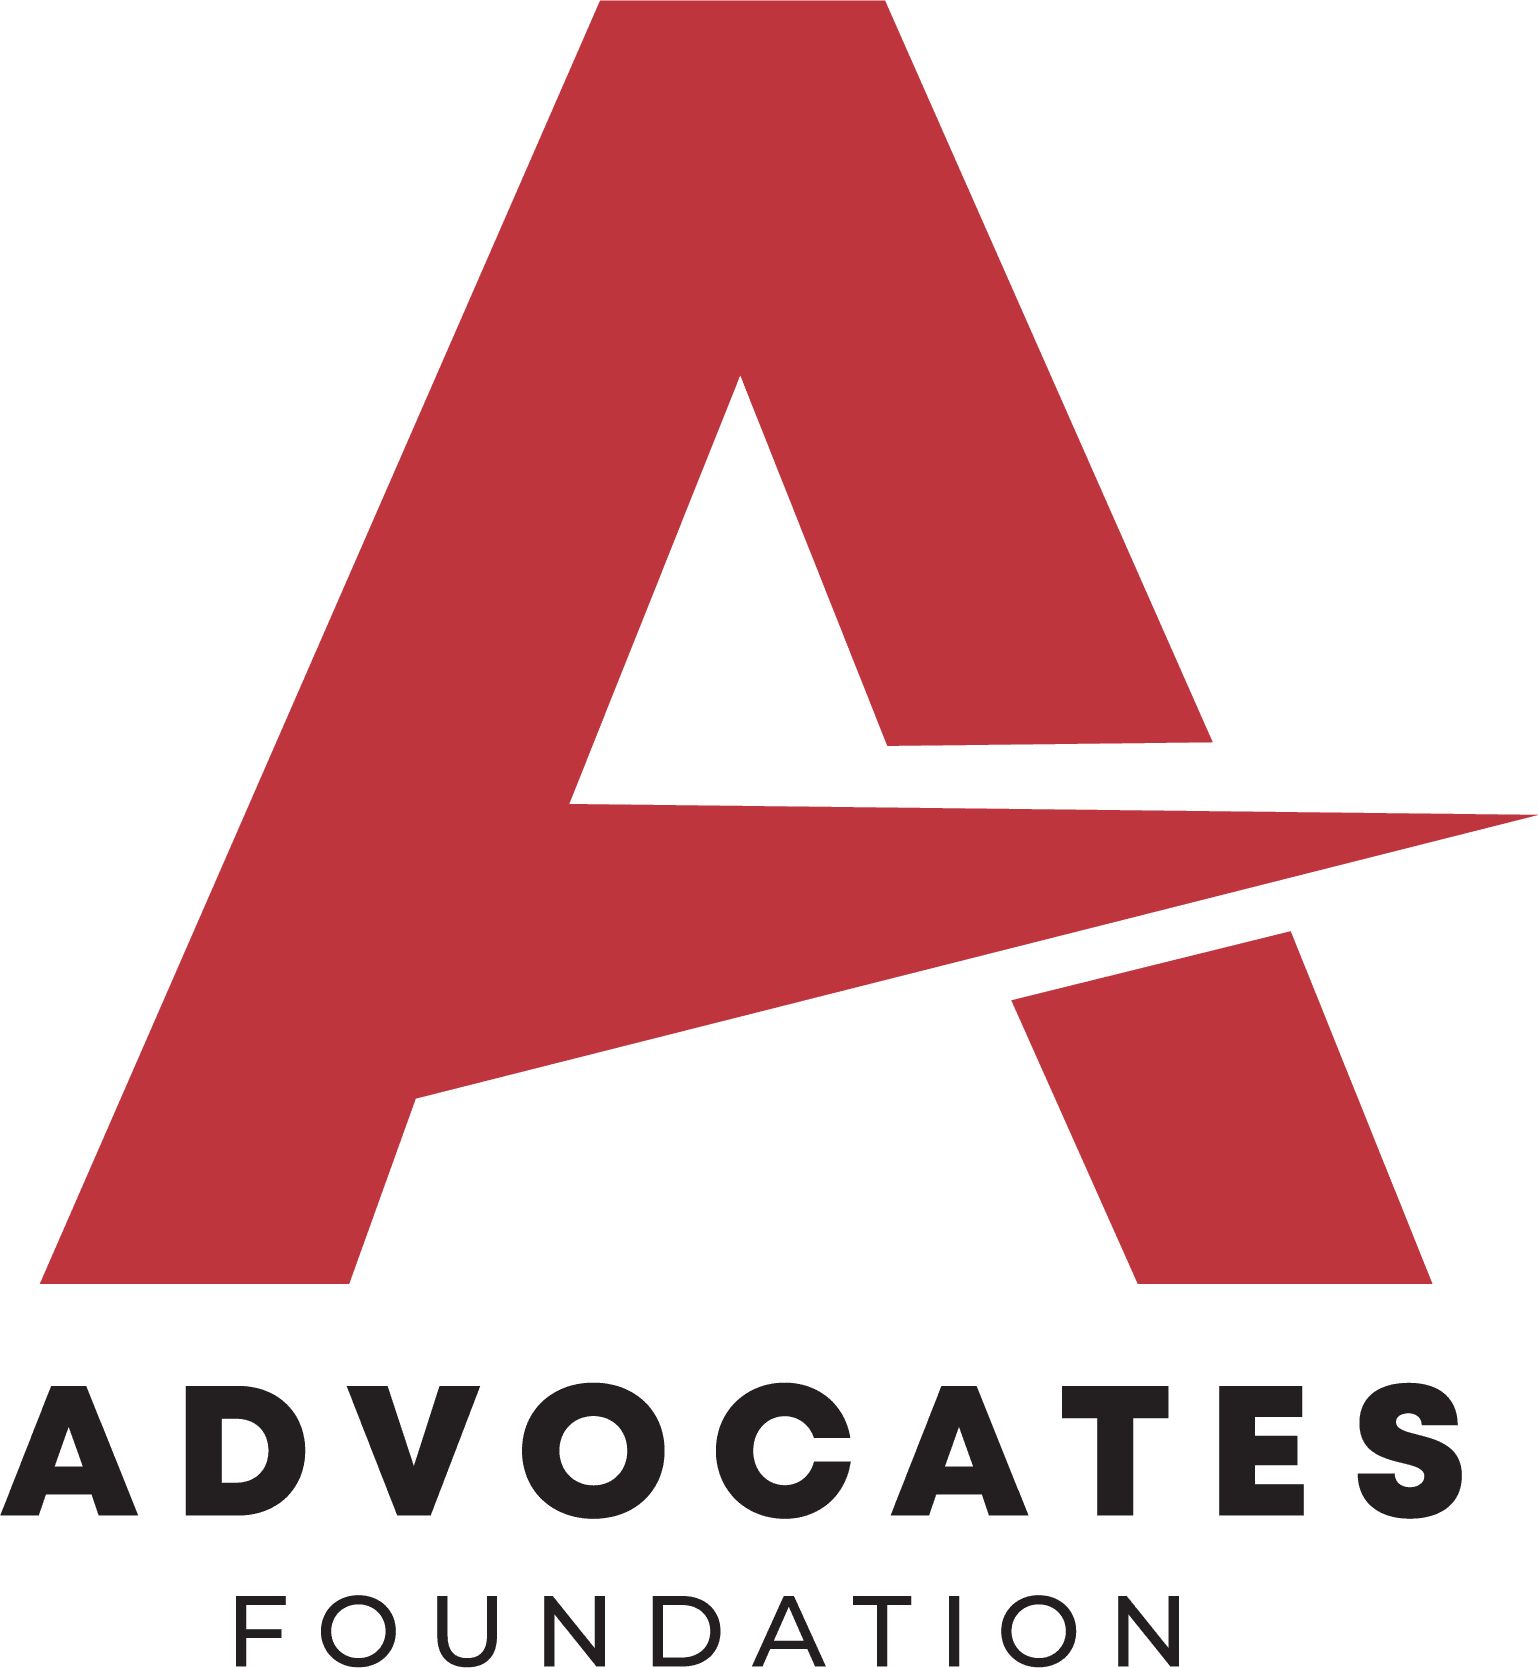 Advocates Foundation